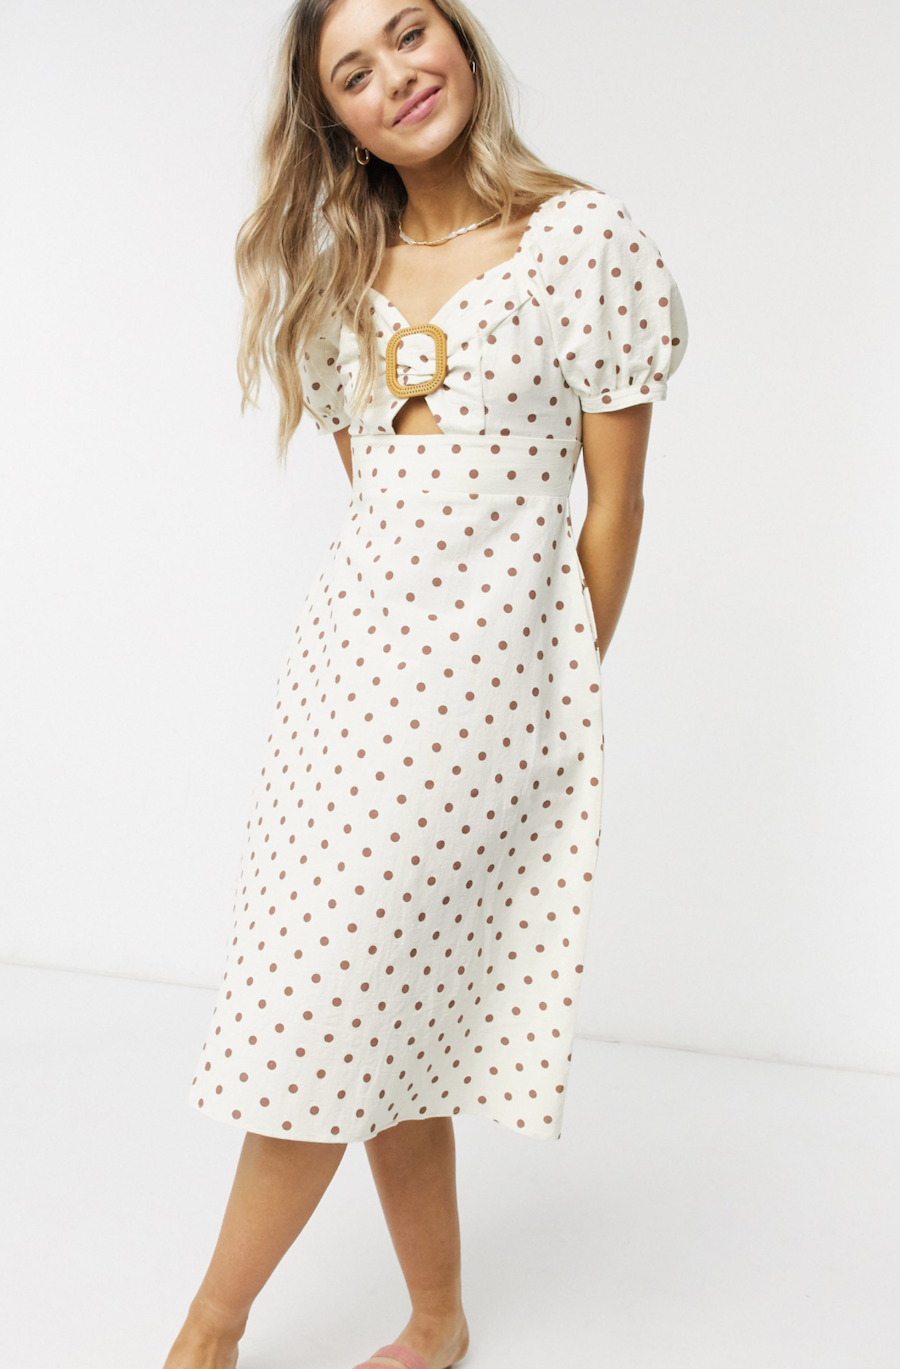 Midi dress with buckle front and polka-dotted sleeves by QED London